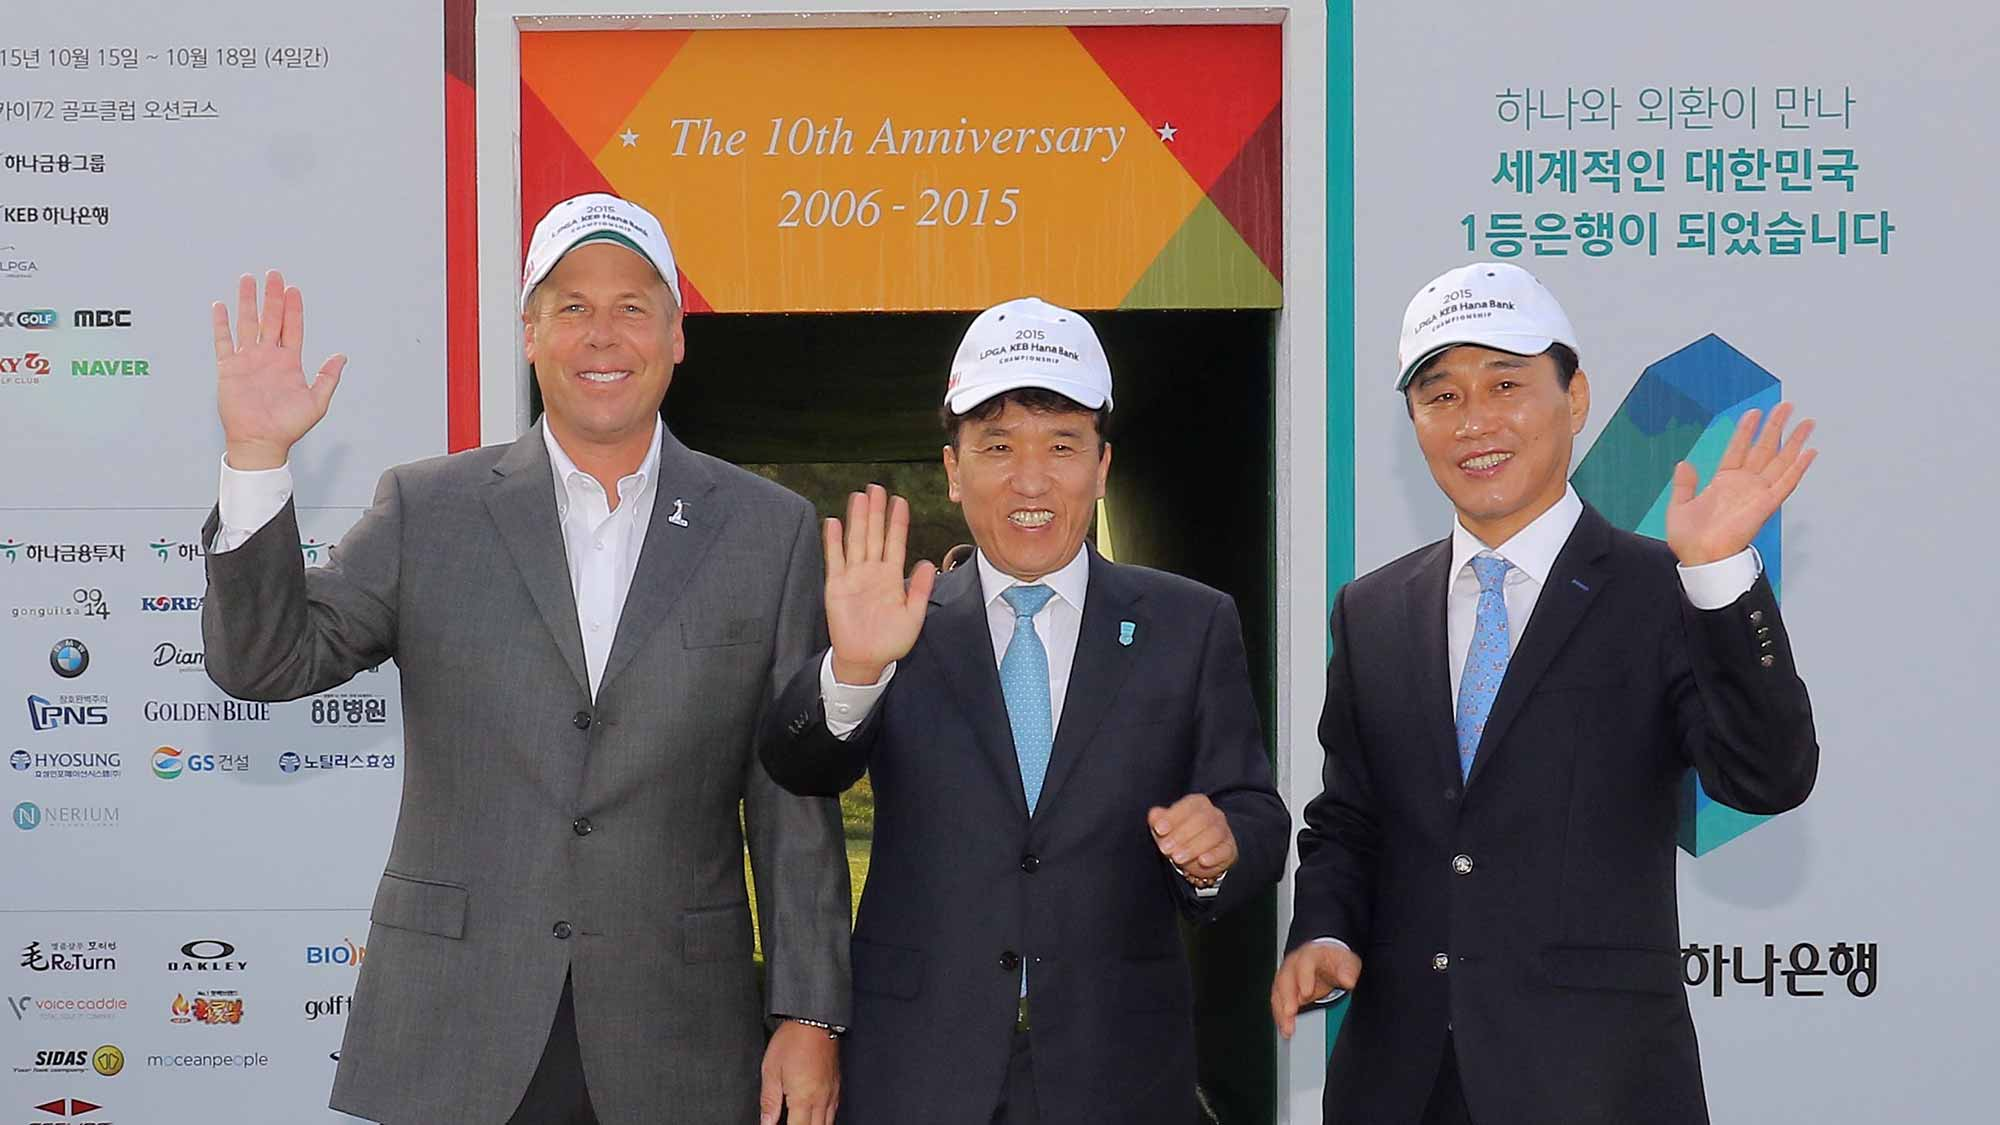 The Opening Ceremony of the LPGA KEB Hana Bank Championship Was Held Thursday Morning at the Ocean Course